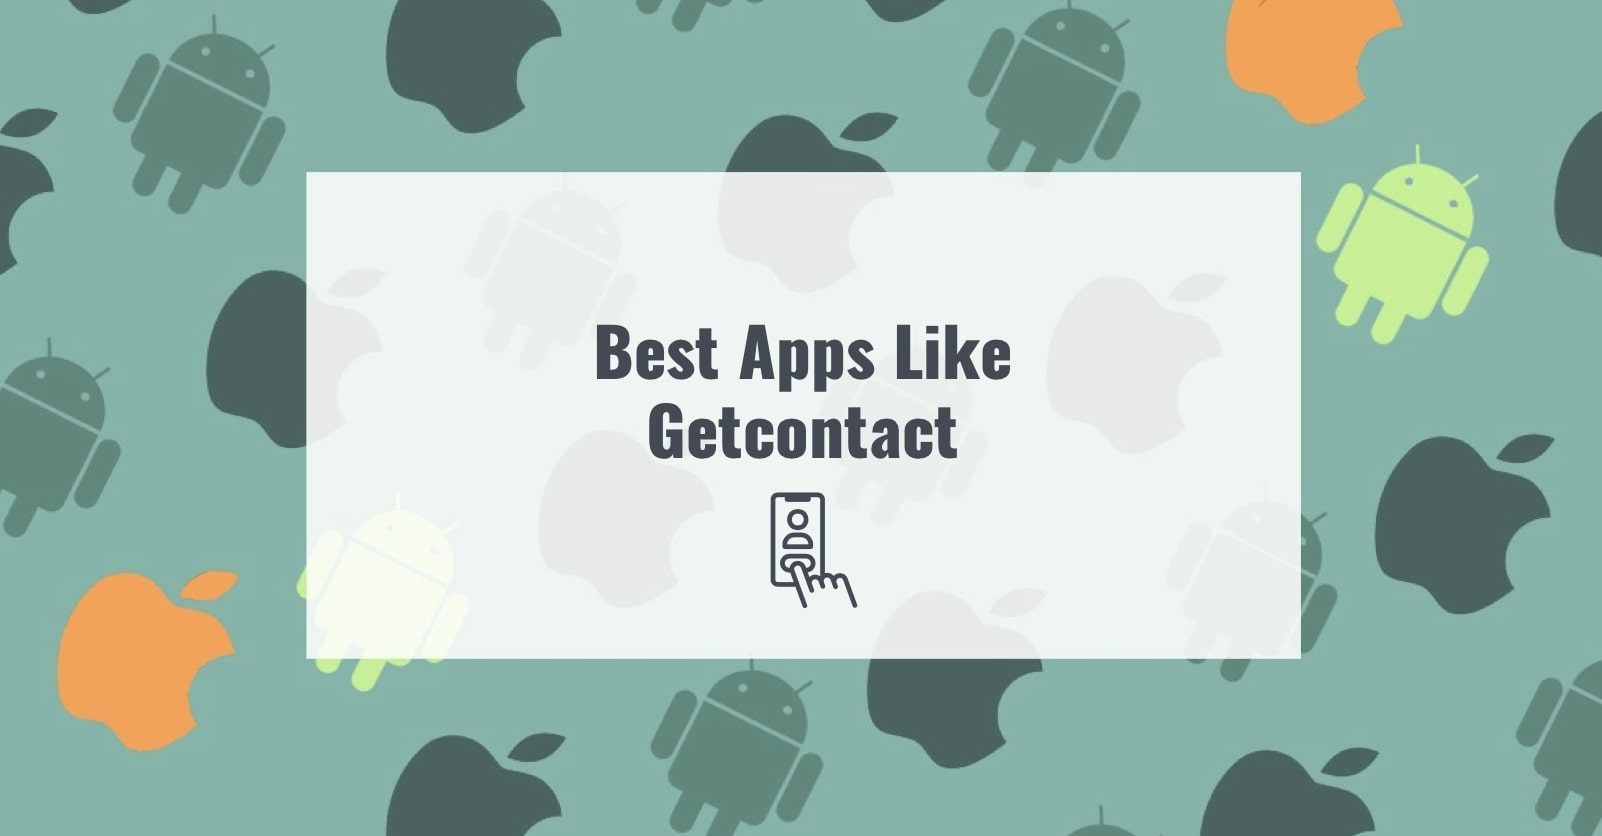 Best Apps Like Getcontact